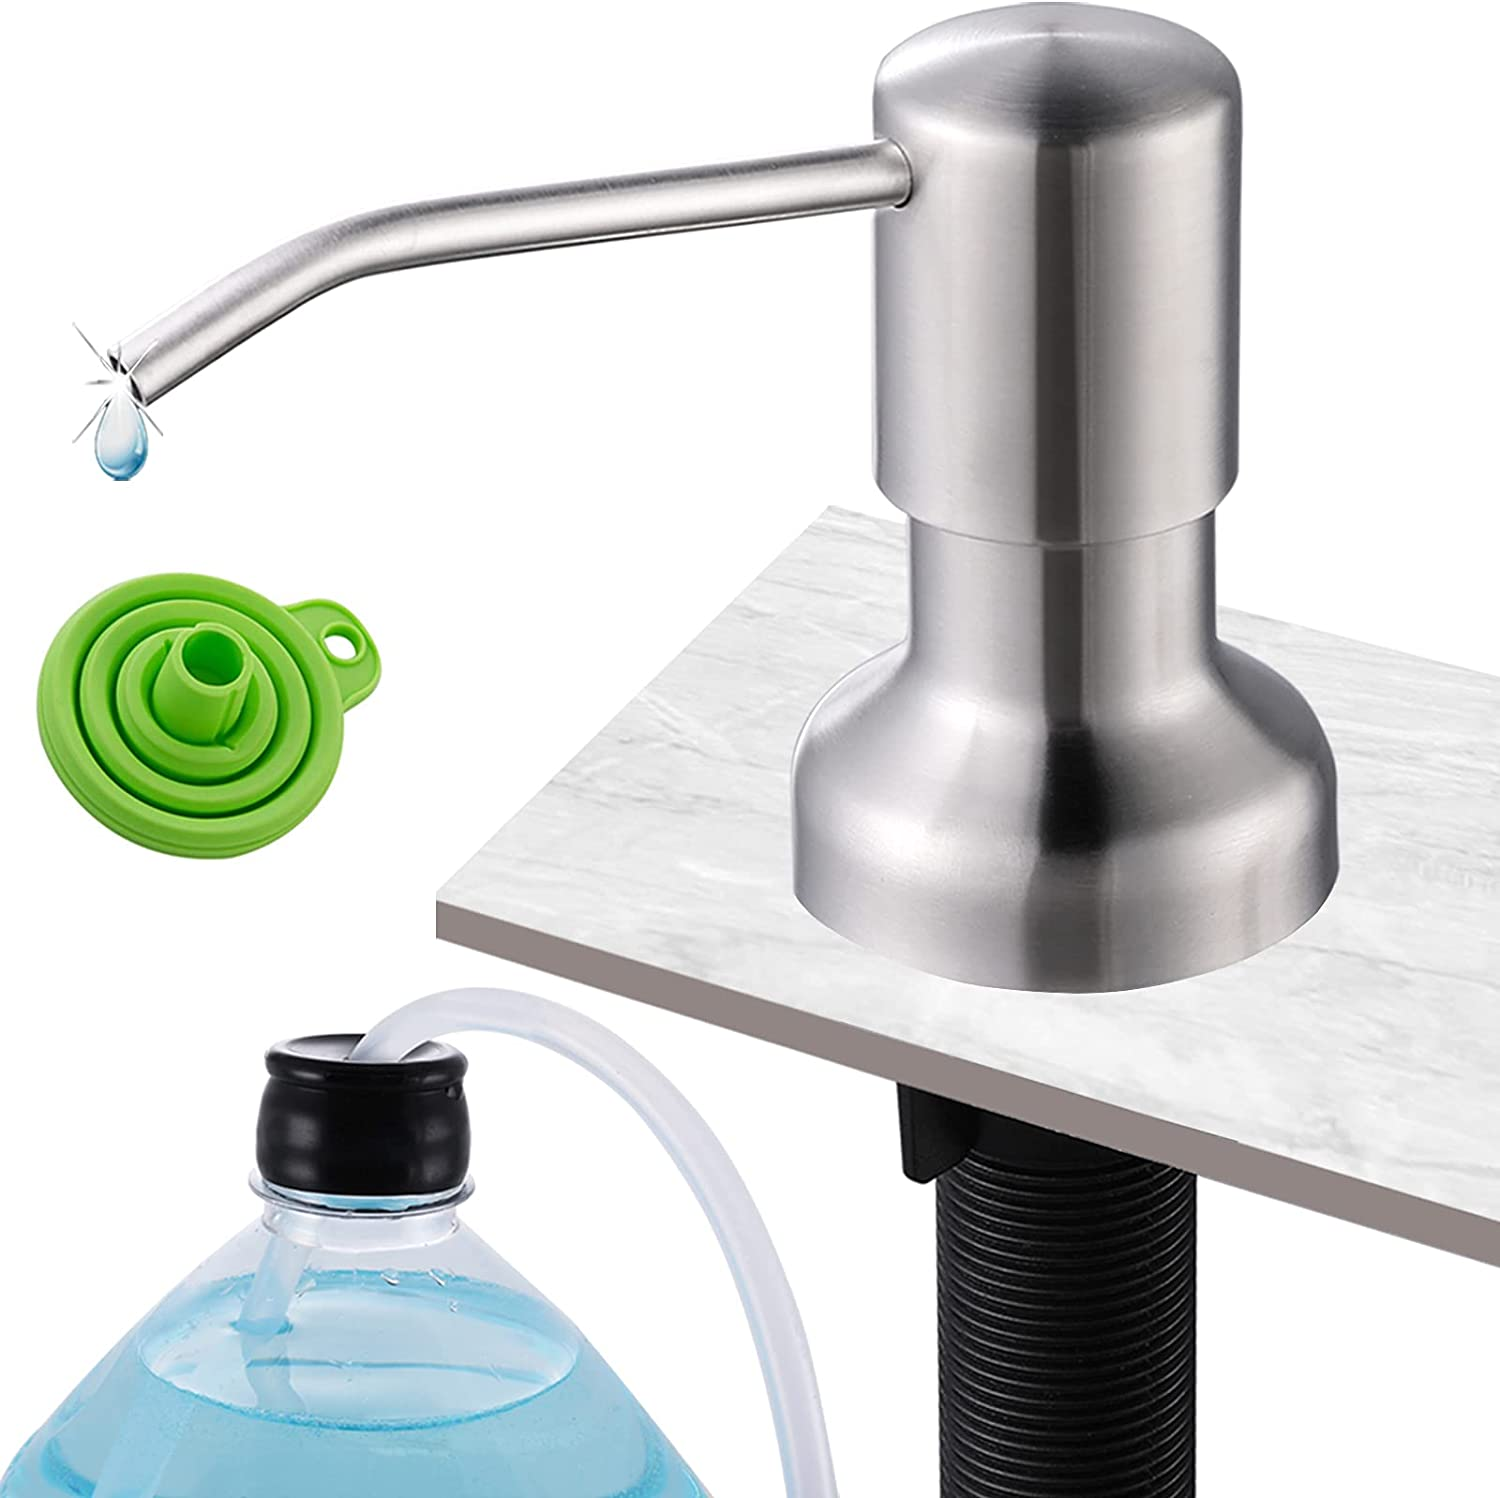 Soap Dispenser for Kitchen Sink, Built in Sink Soap Dispenser Stainless Steel Pump Brushed Nickel with 45